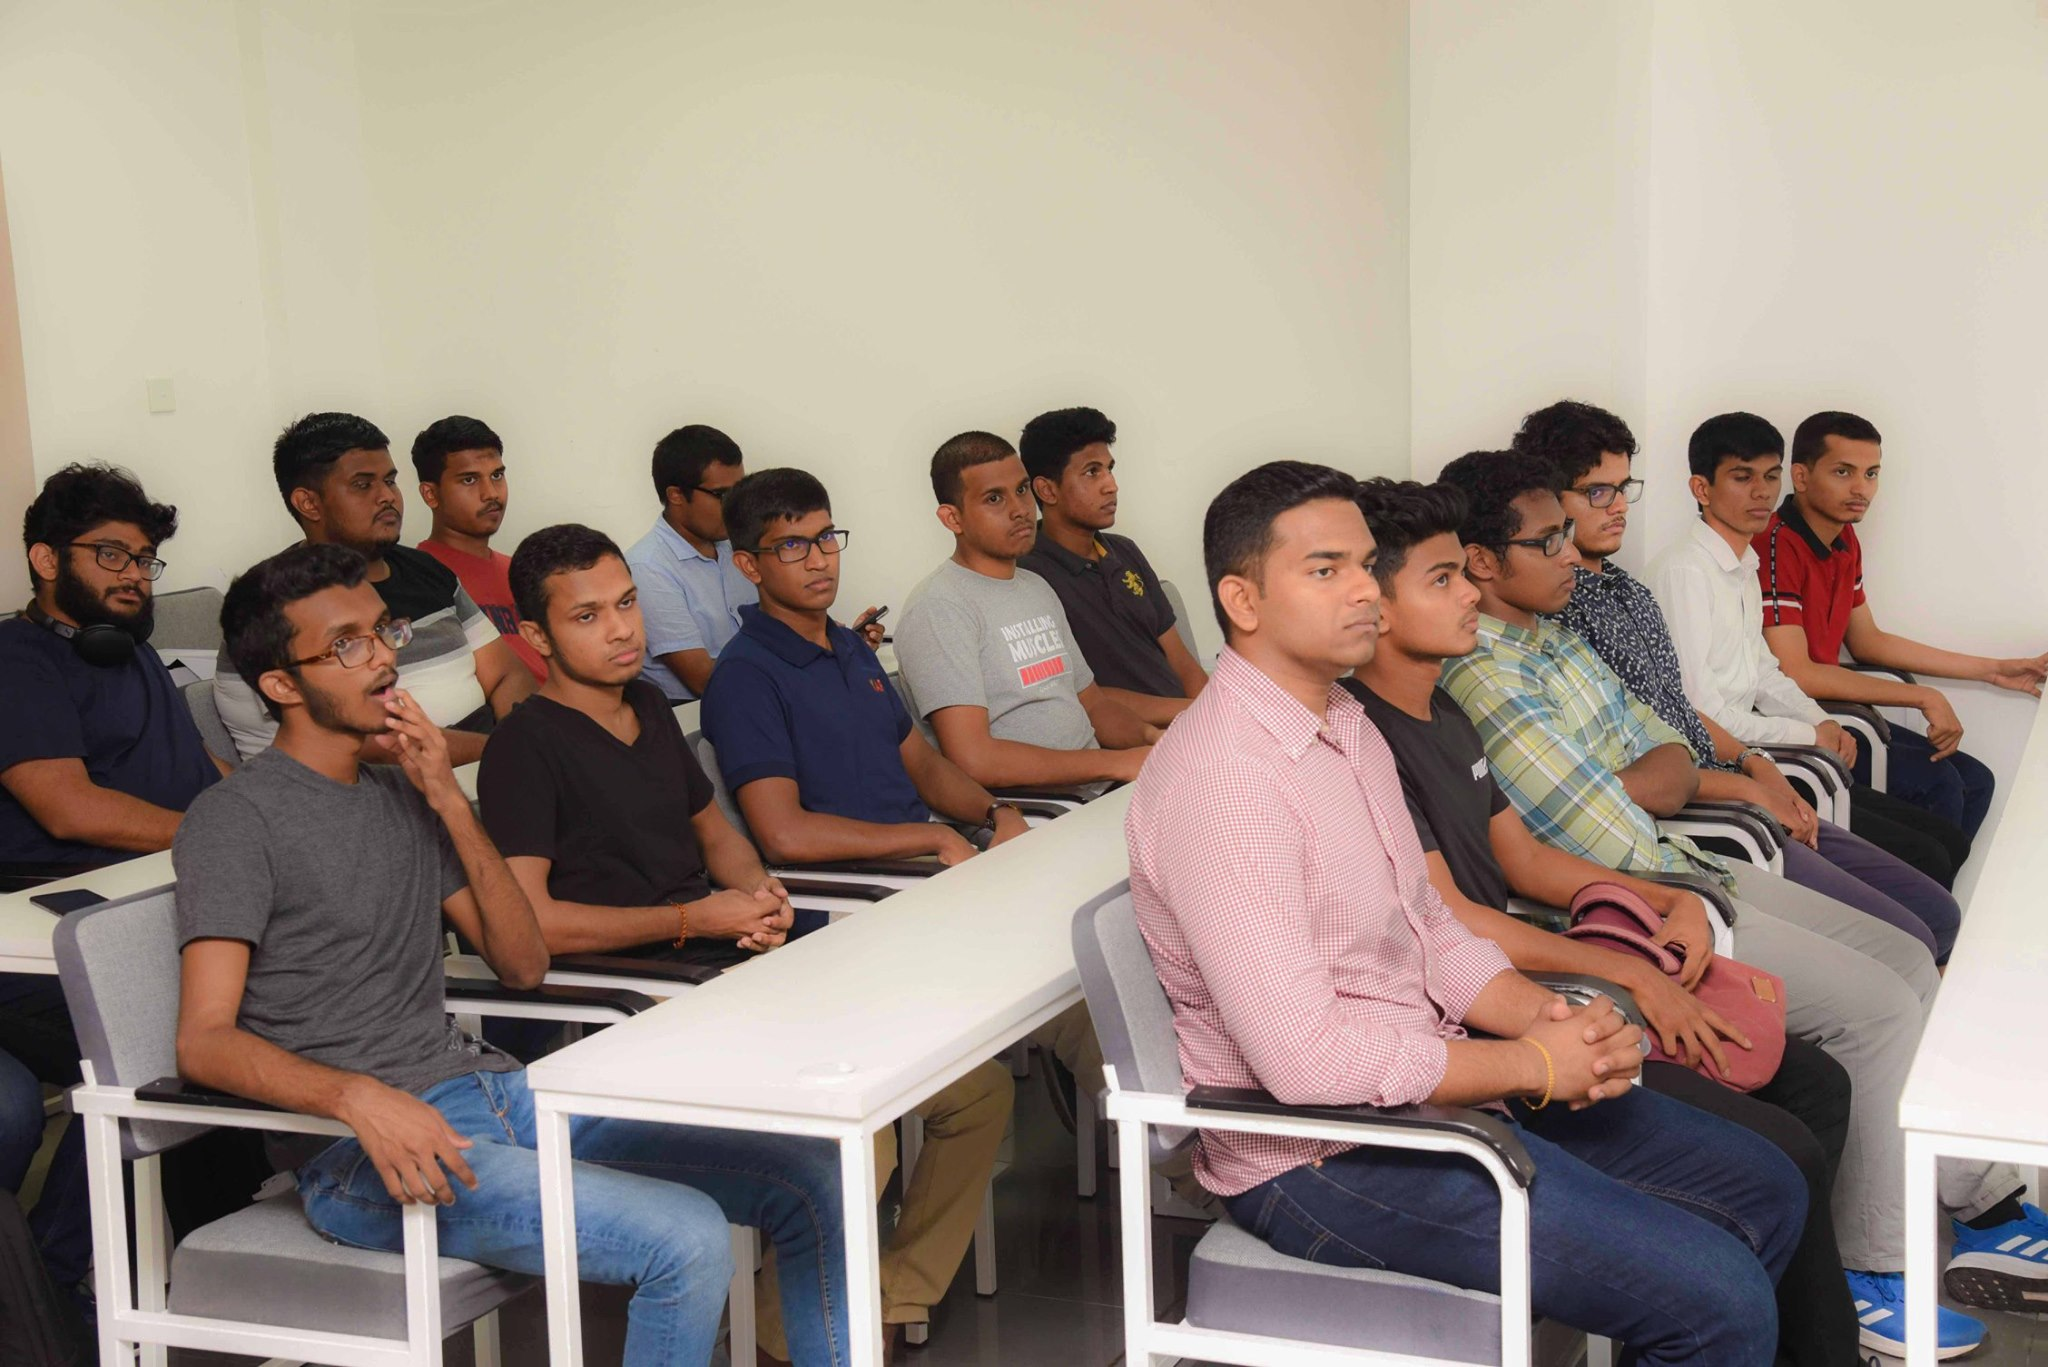 A-pre-departure-training-session-was-organized-by-SLIIT-Global-Education-for-students-